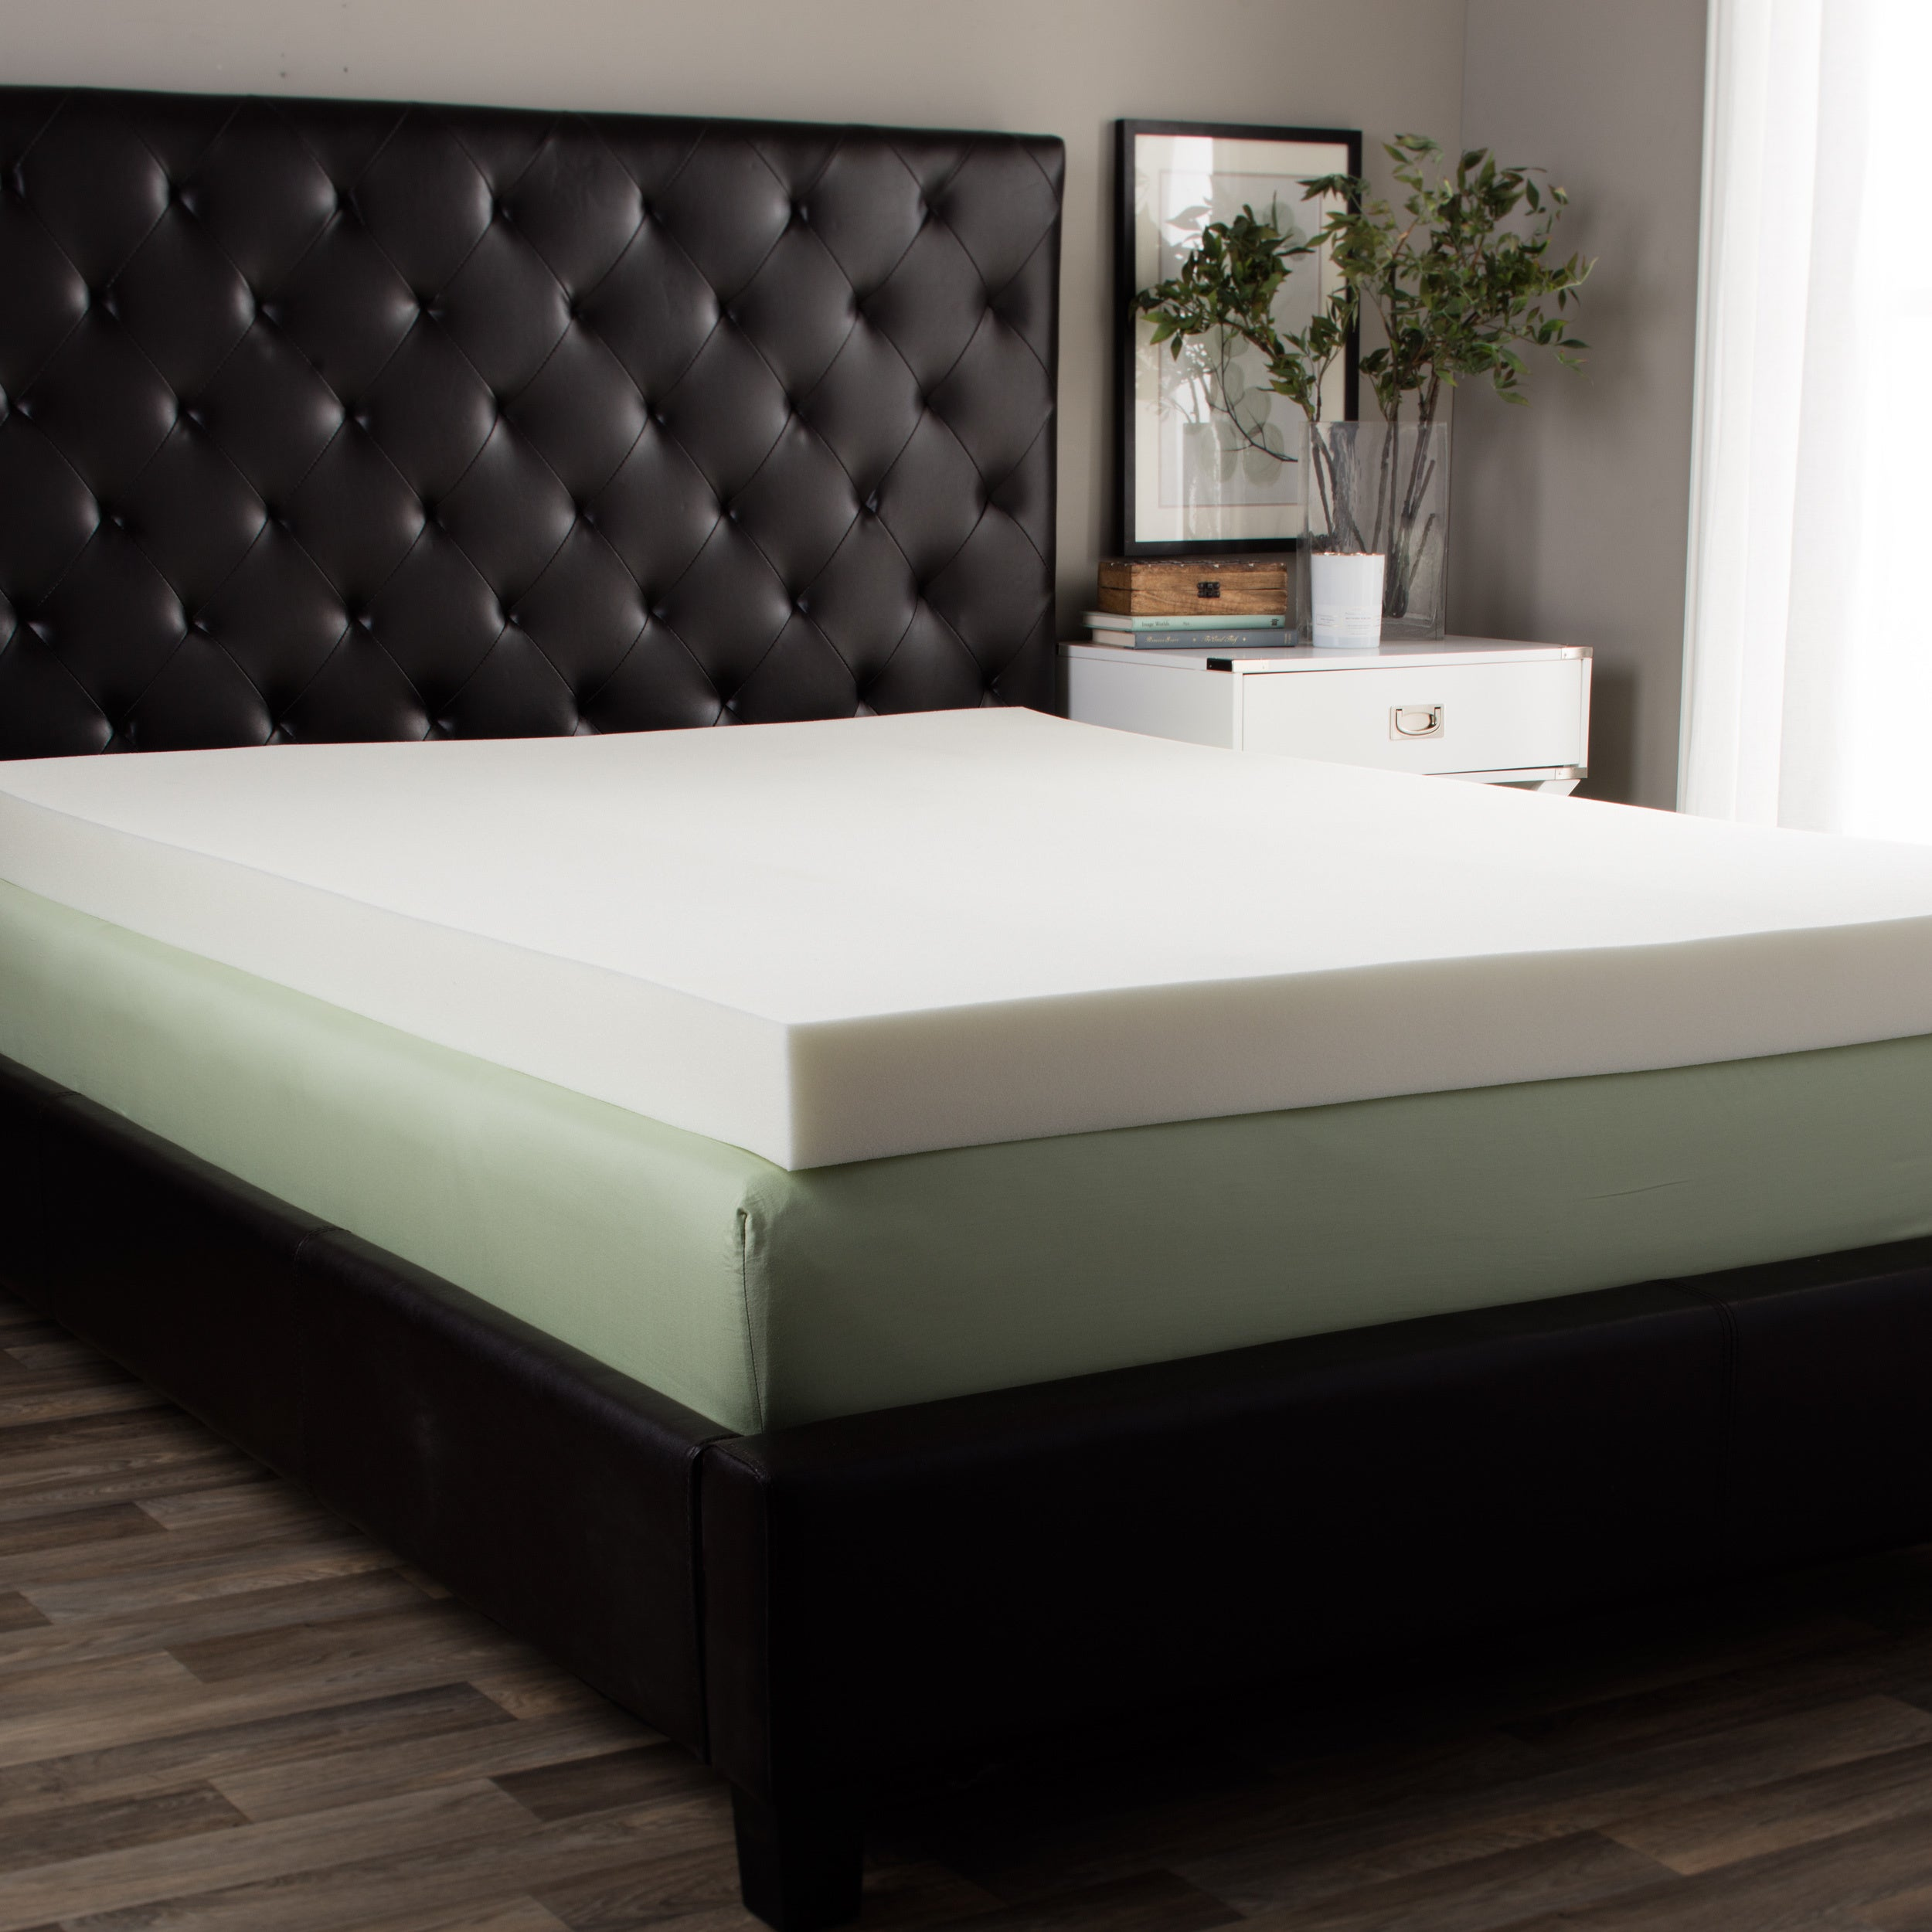 Splendorest 4-inch Memory Foam Mattress Topper Queen Size...